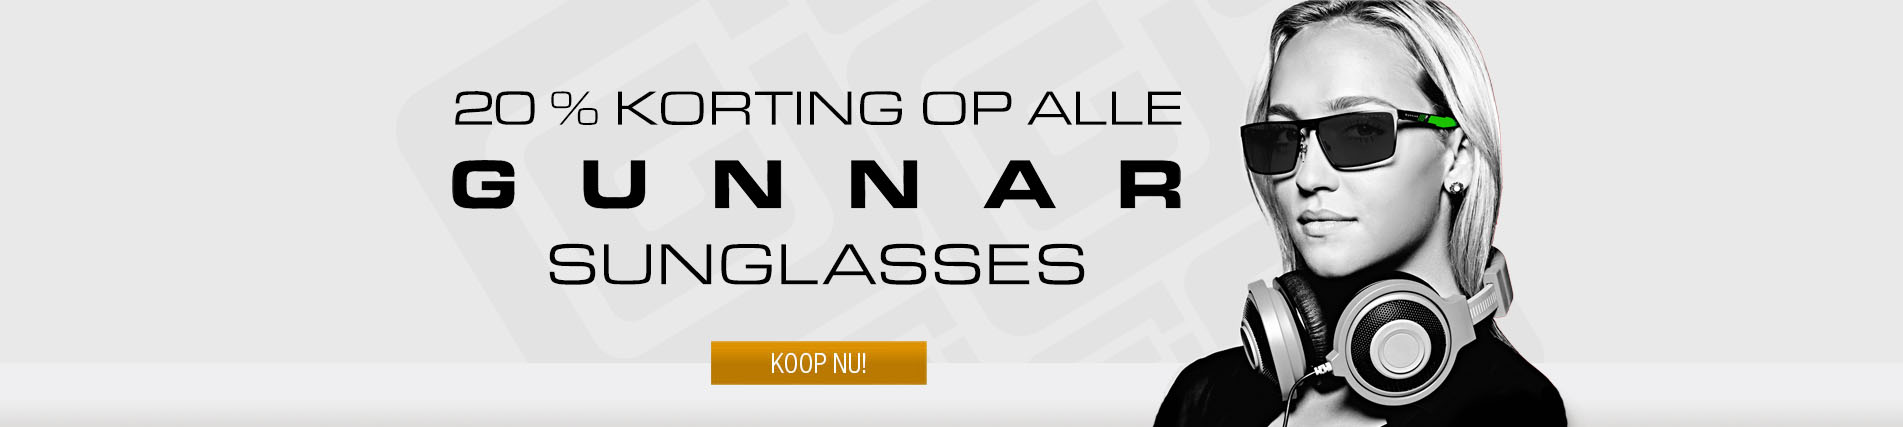 Slider: Gunnar Sunglasses